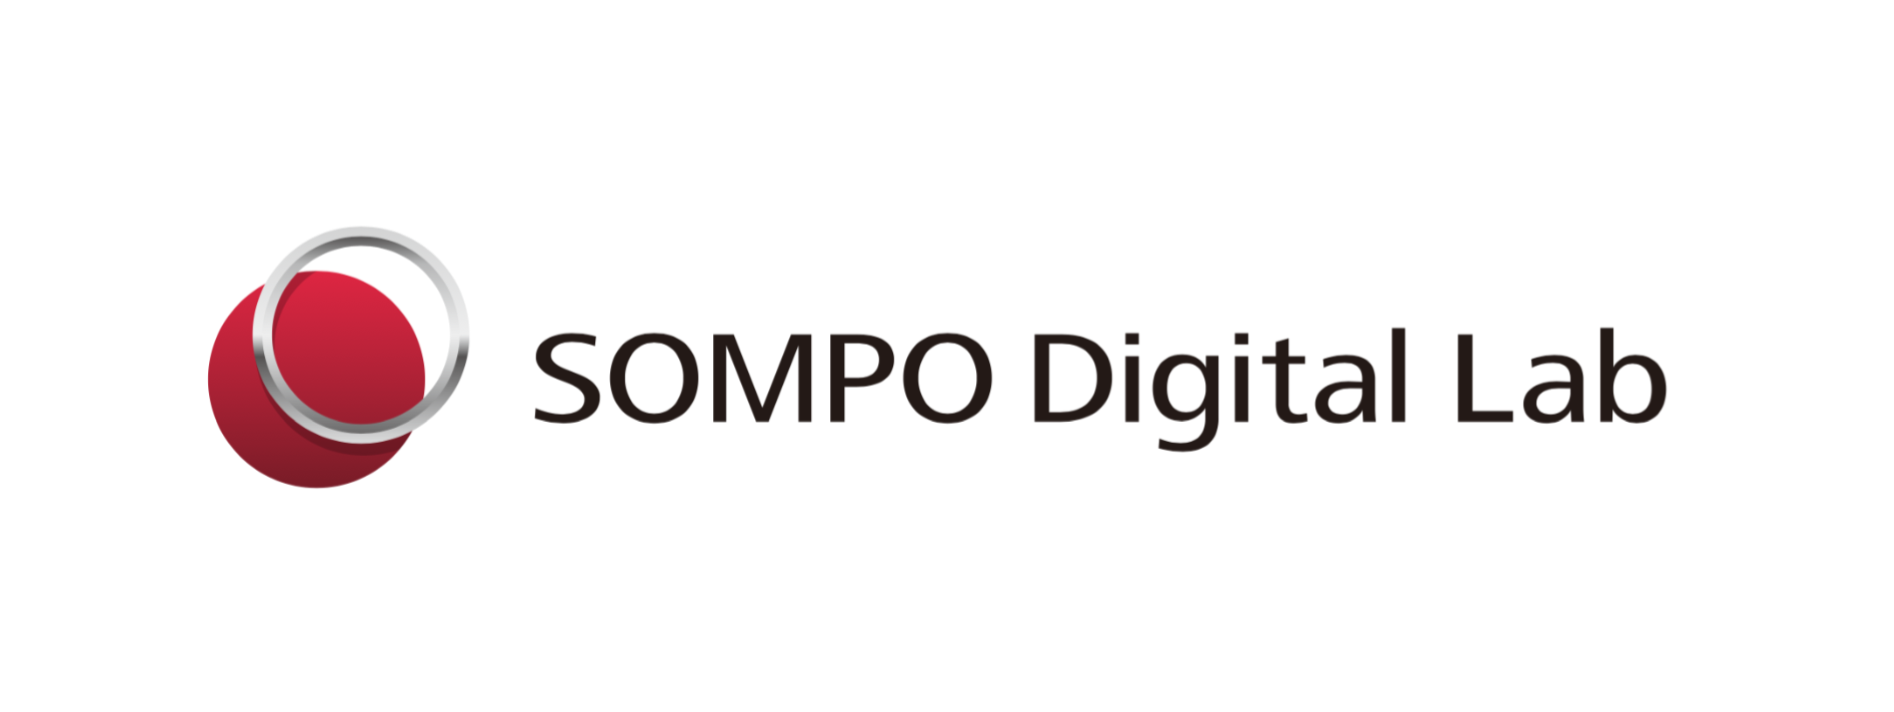 SOMPO Digital Lab